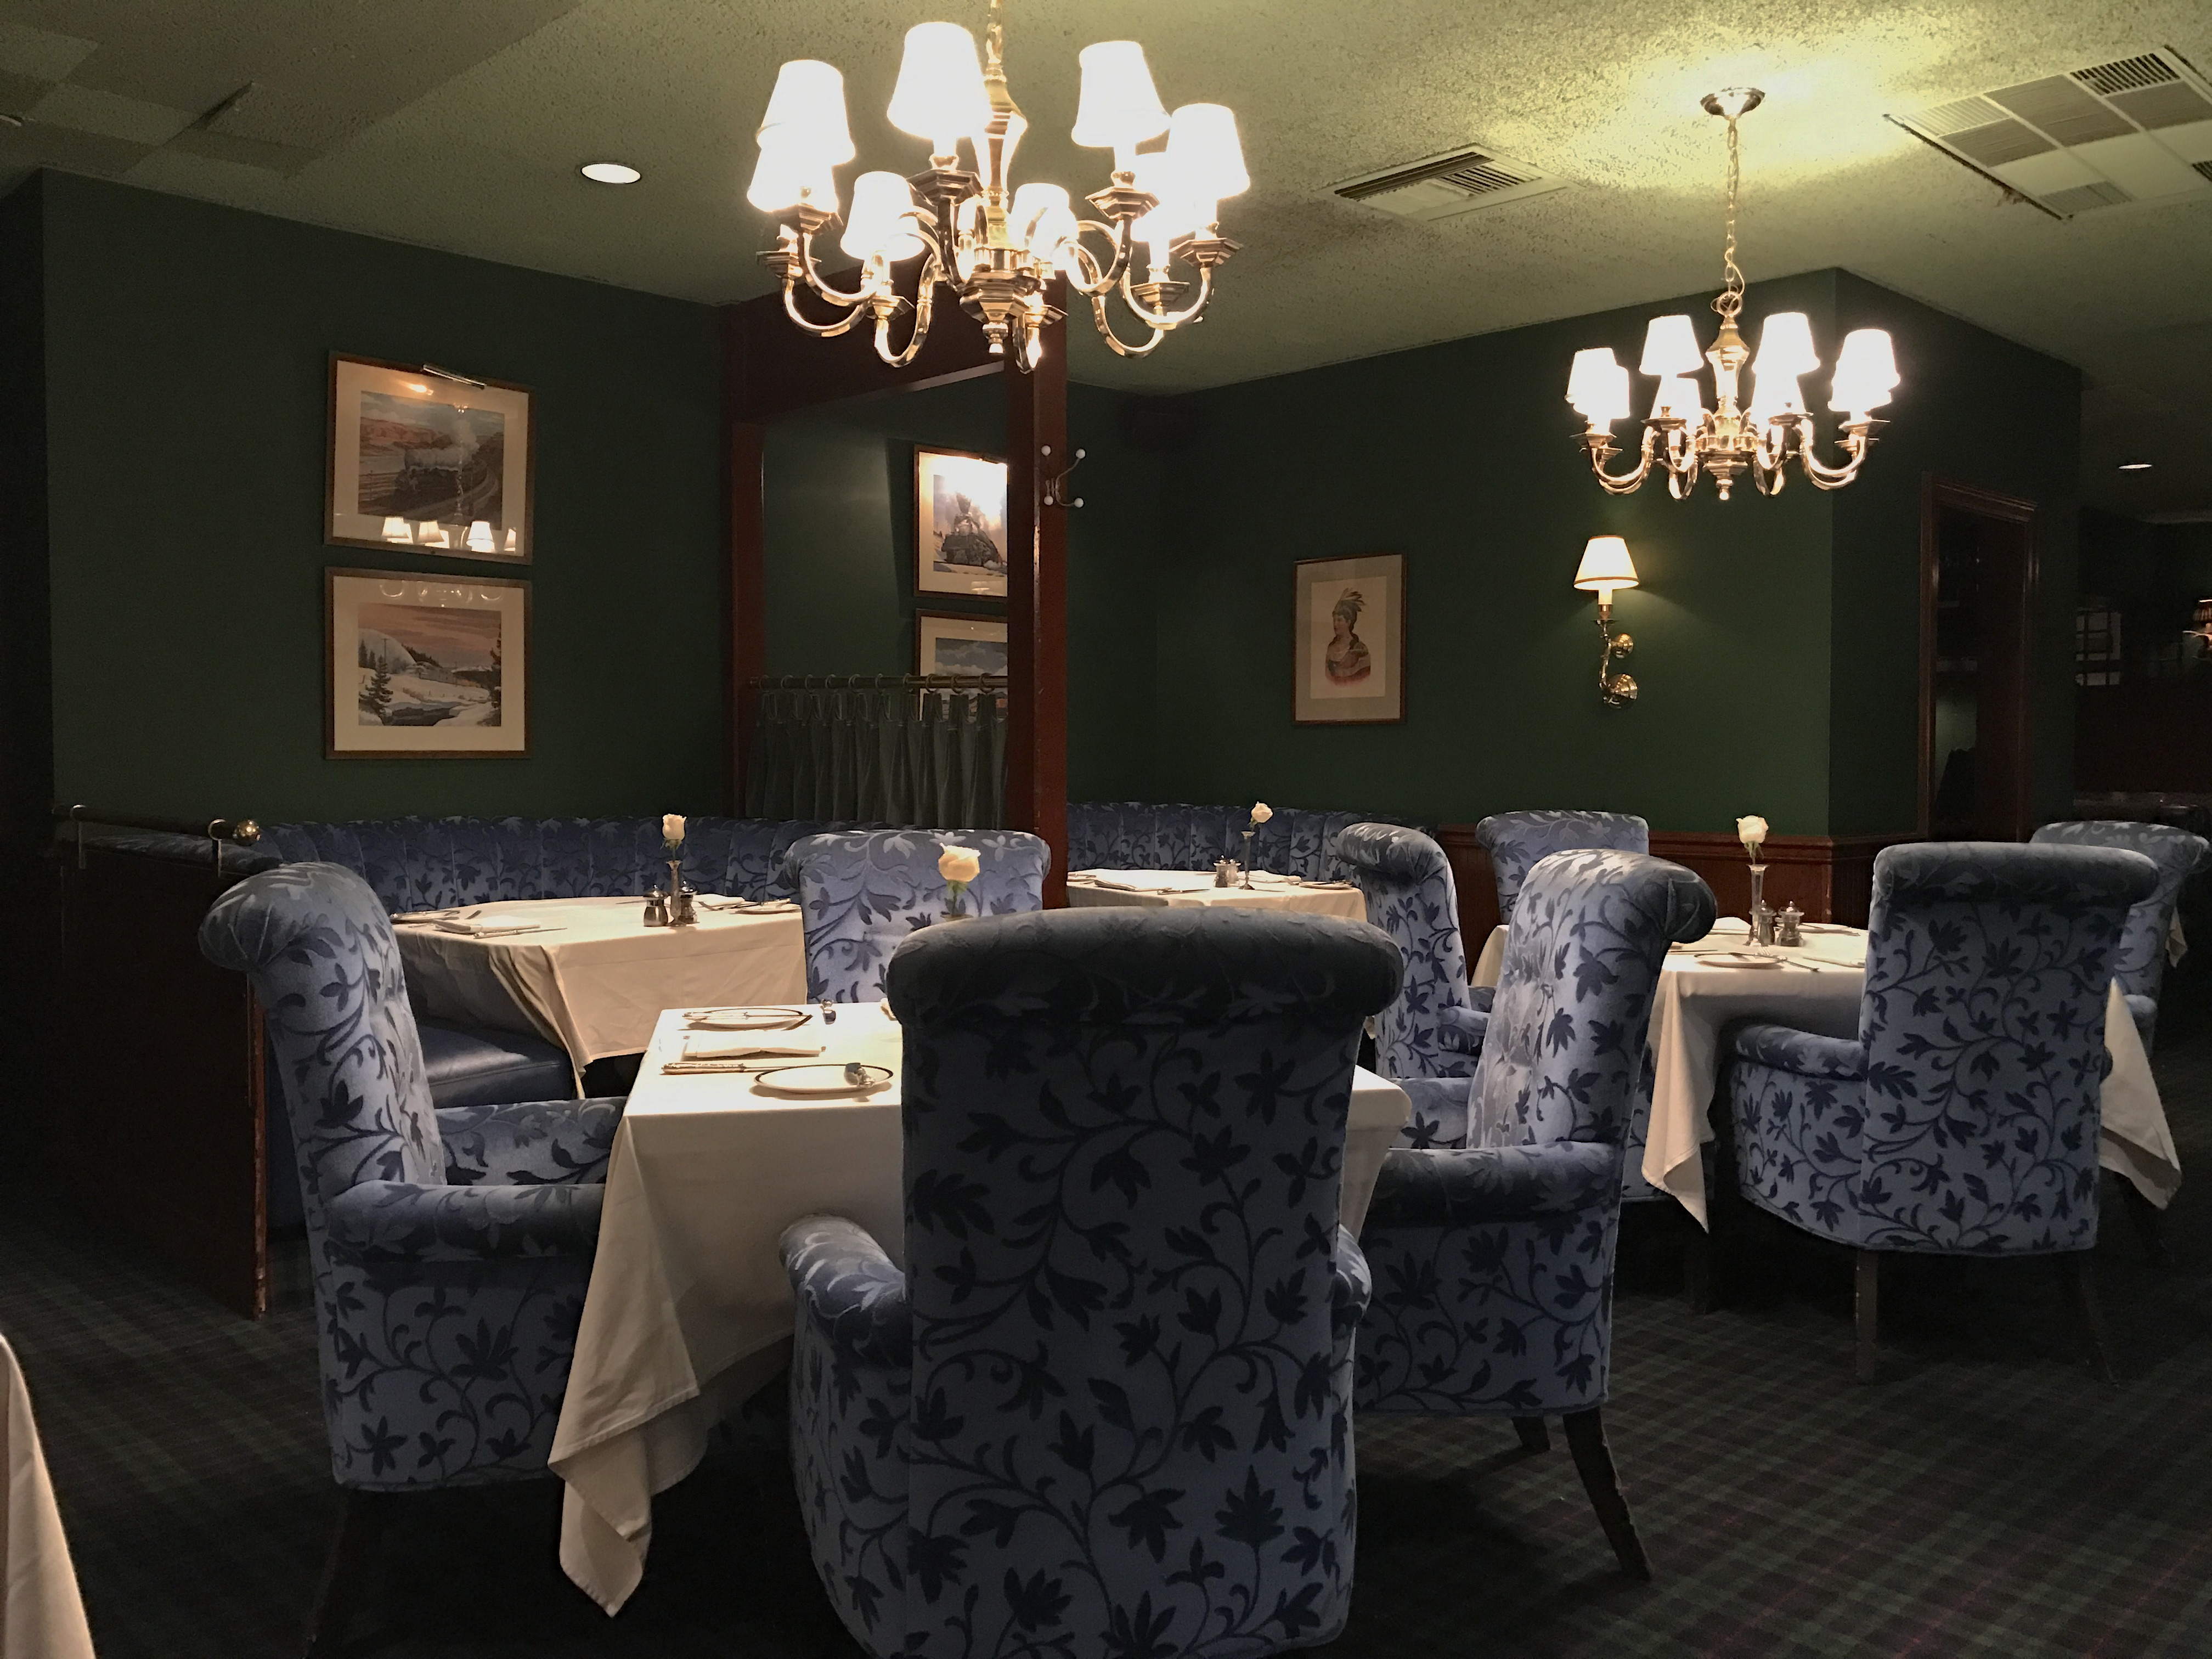 Pacific Dining Car La S Only 24 7 Fine Dining Restaurant Since 1921 Offers New Specials Girls On Food